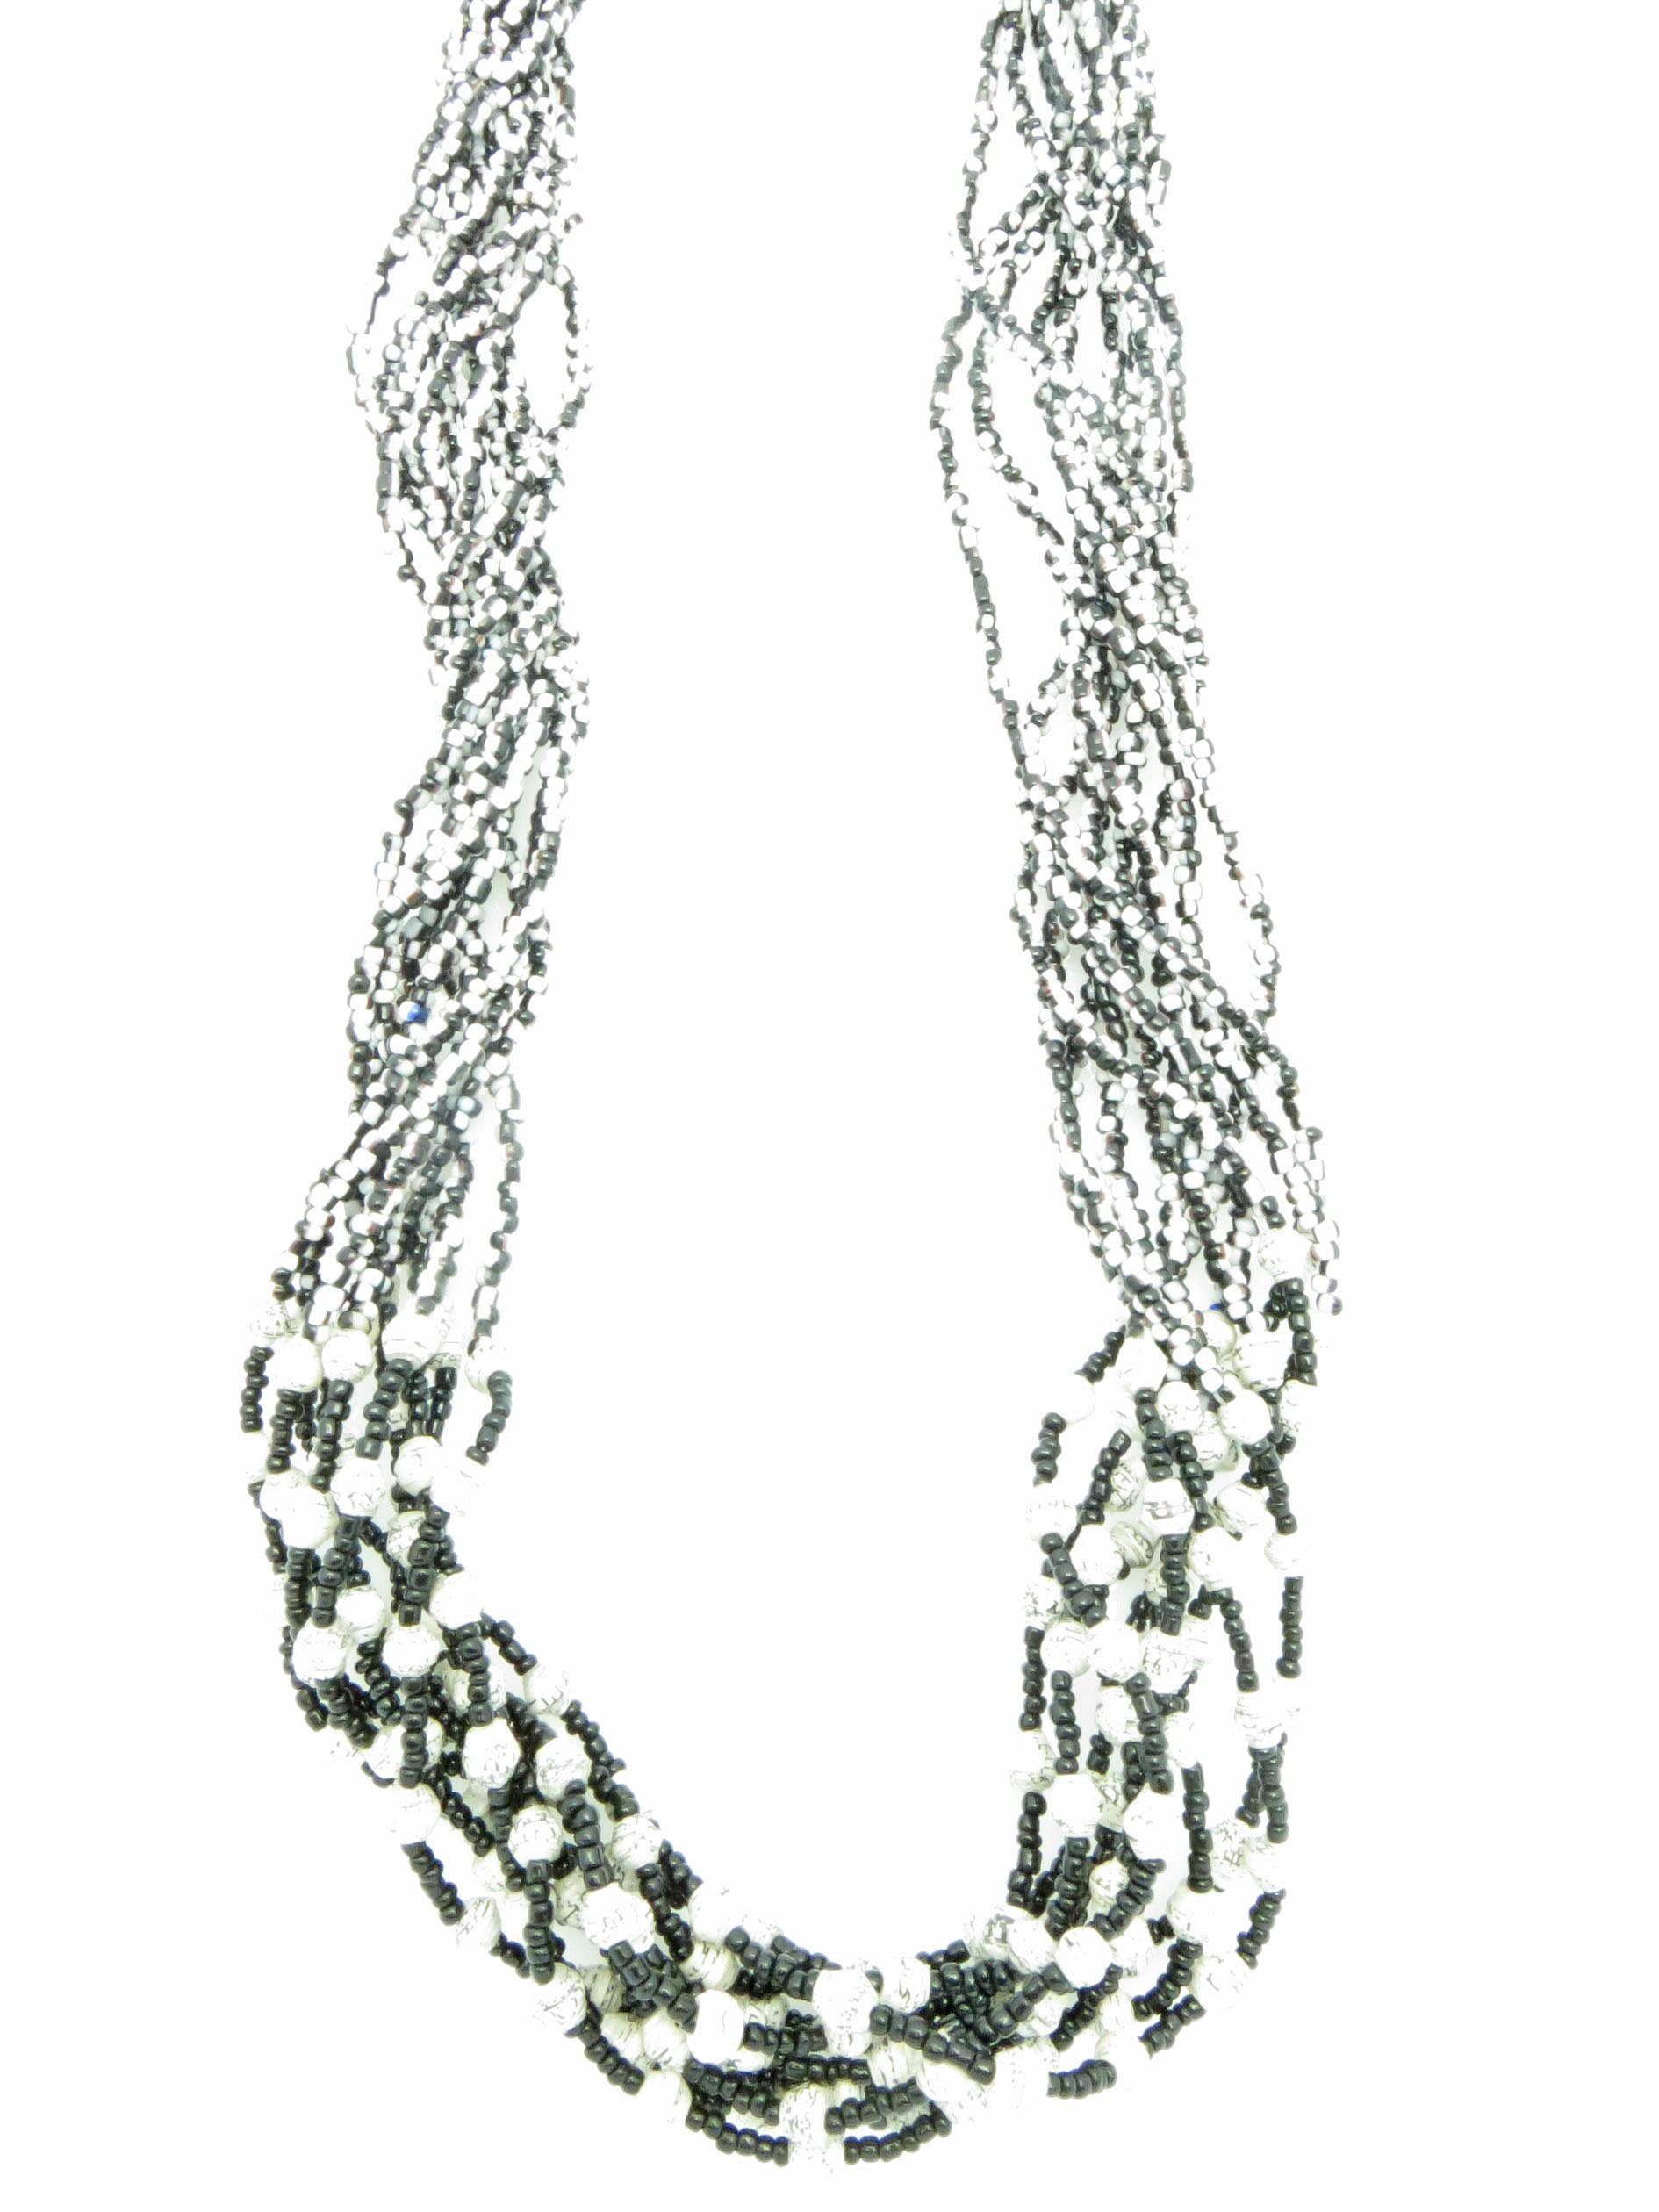 Paper/seed bead multi-strand - black & white mixed necklace